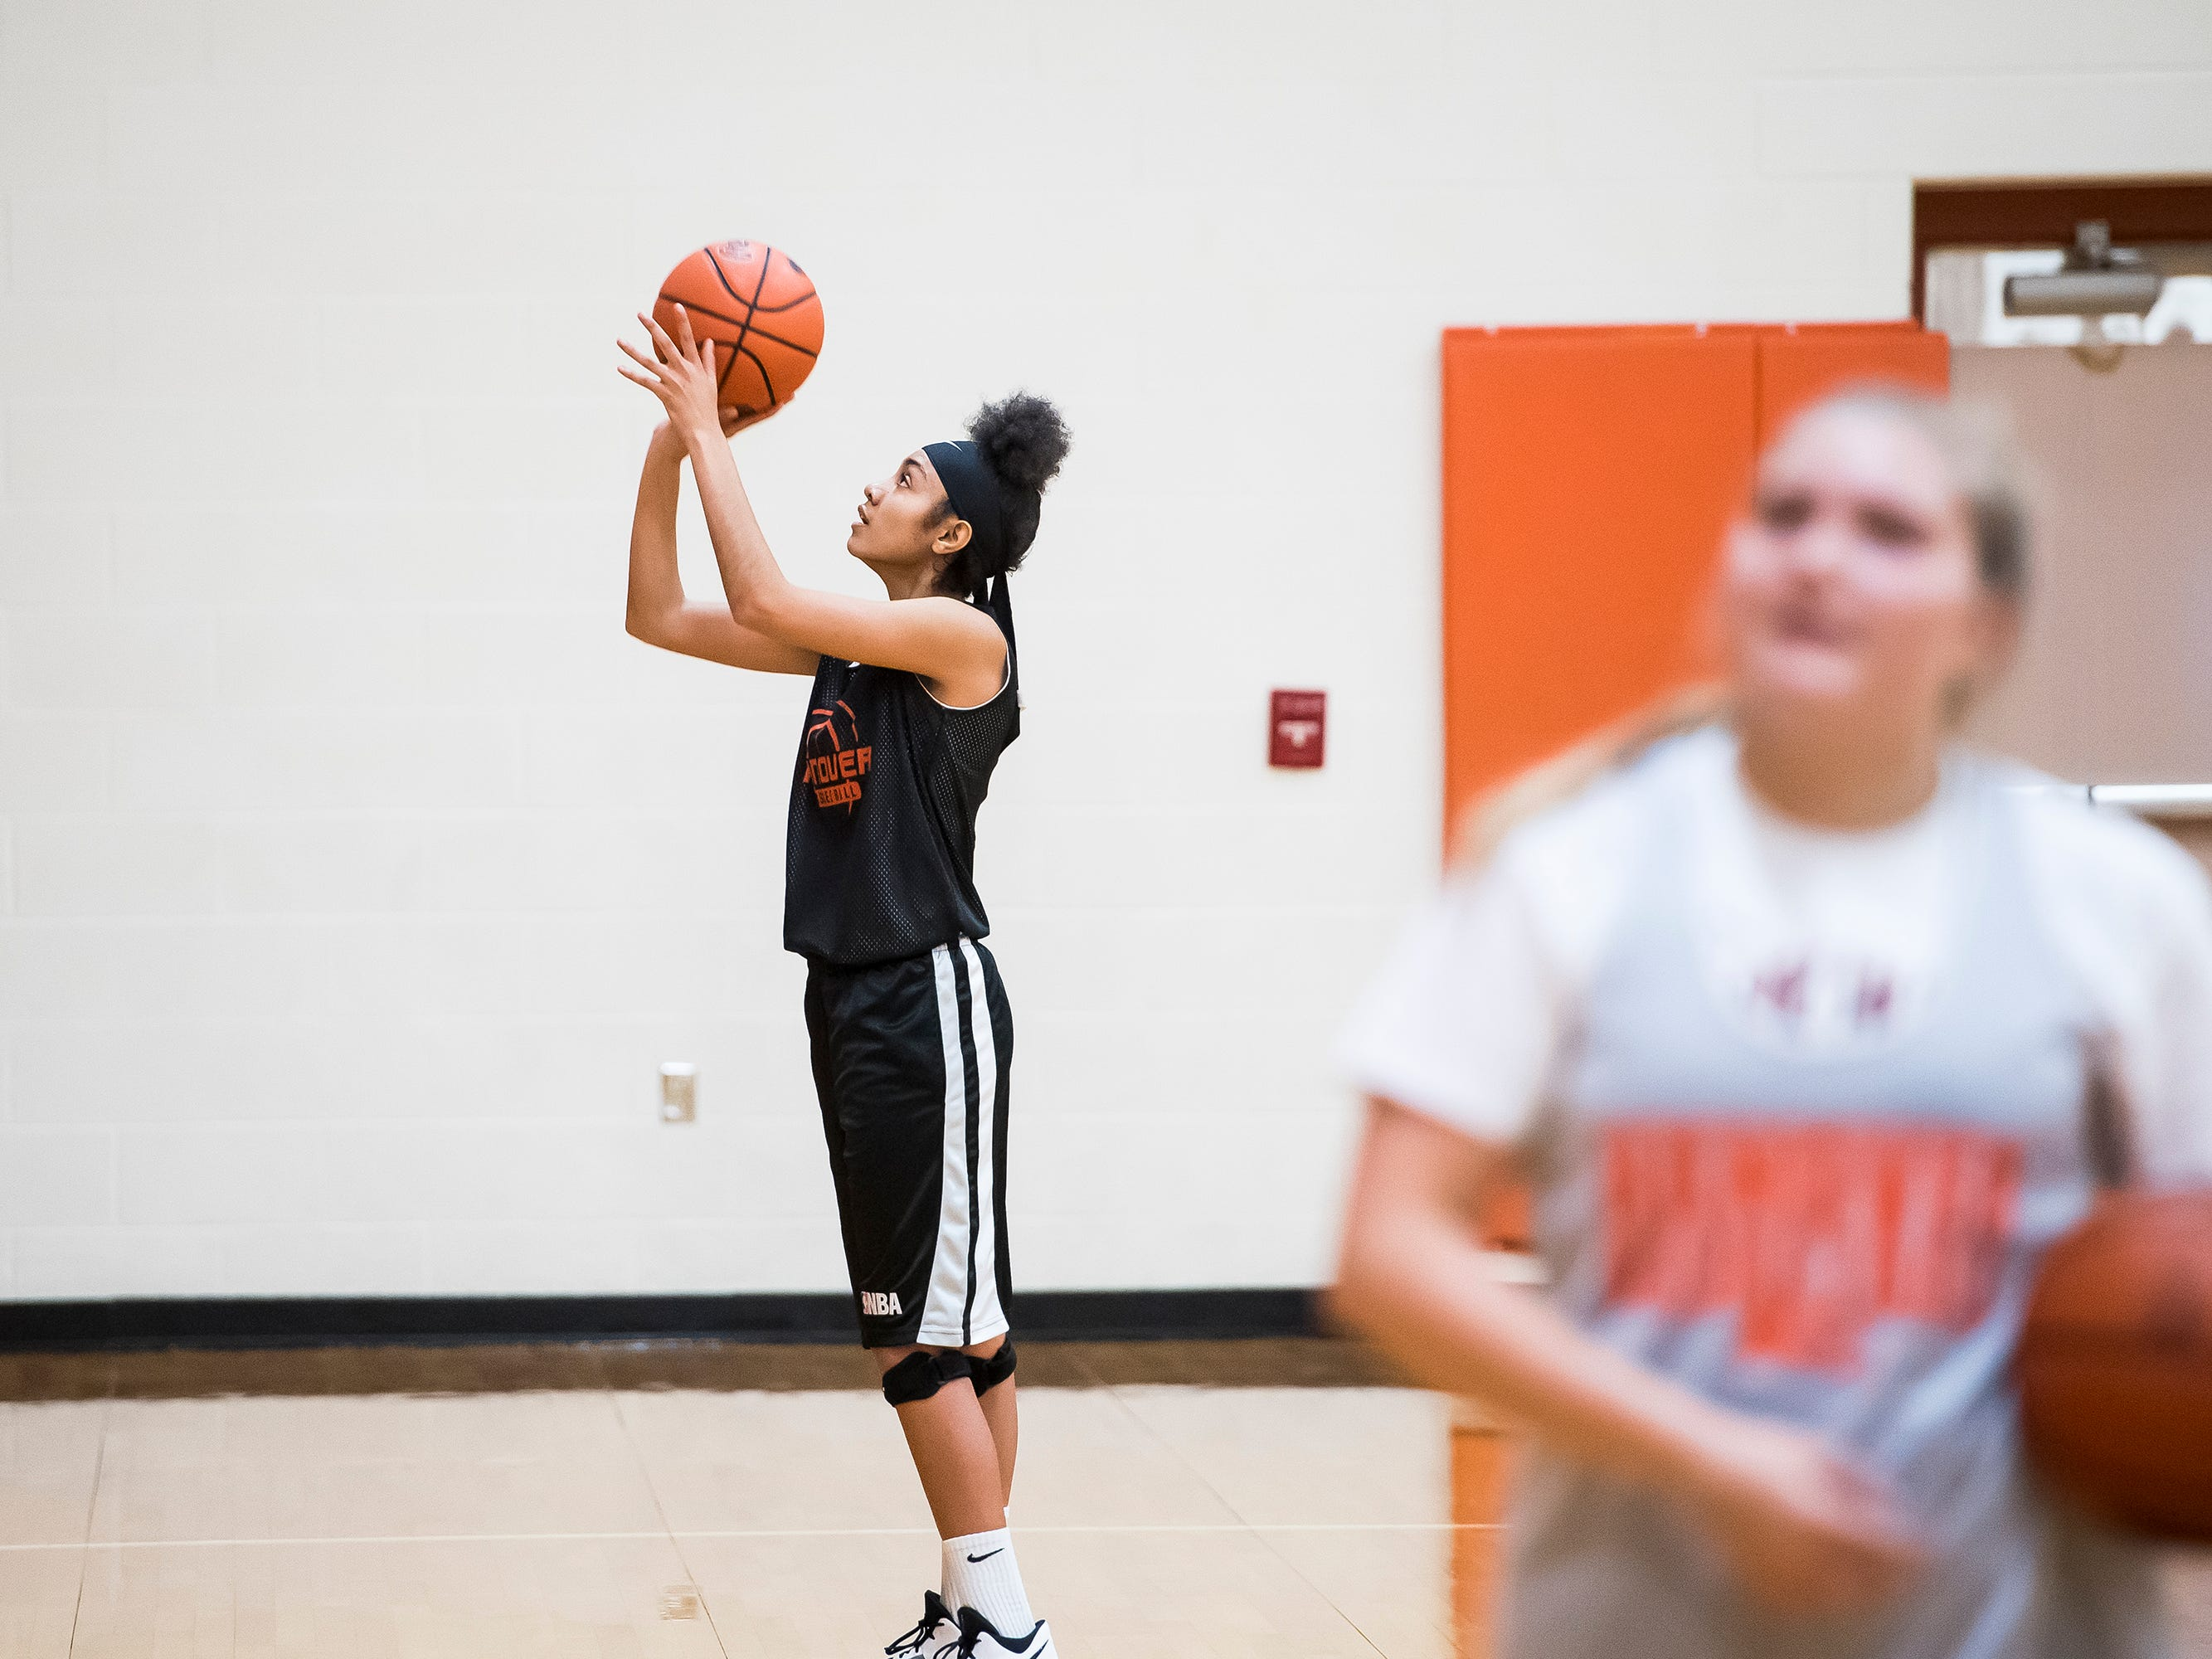 Hanover High School basketball player Avery Abell shoots free throws during the first official day of winter sports practice on Friday, November 16, 2018.